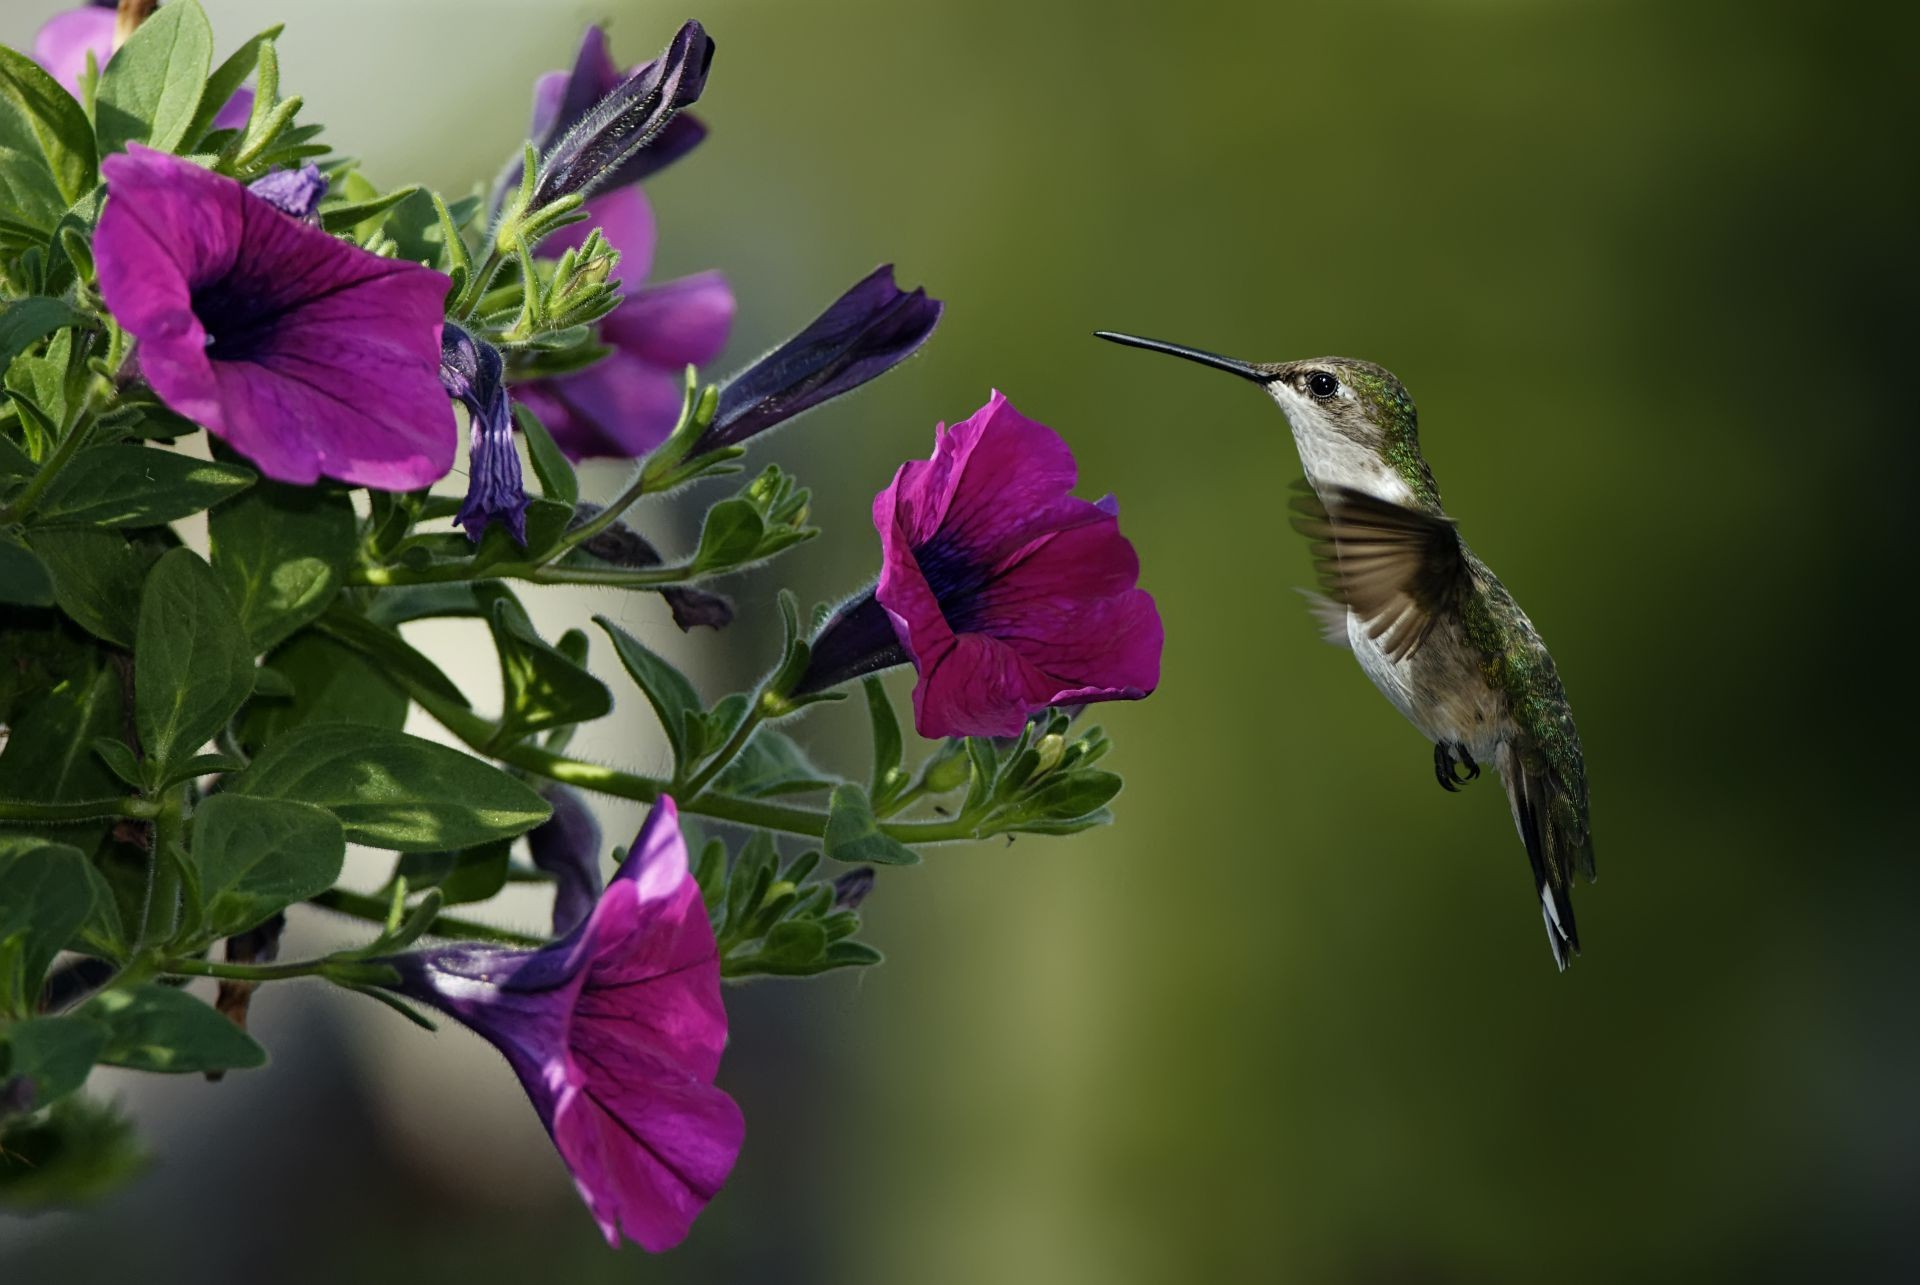 macro Bird humming bird flowers Petunia